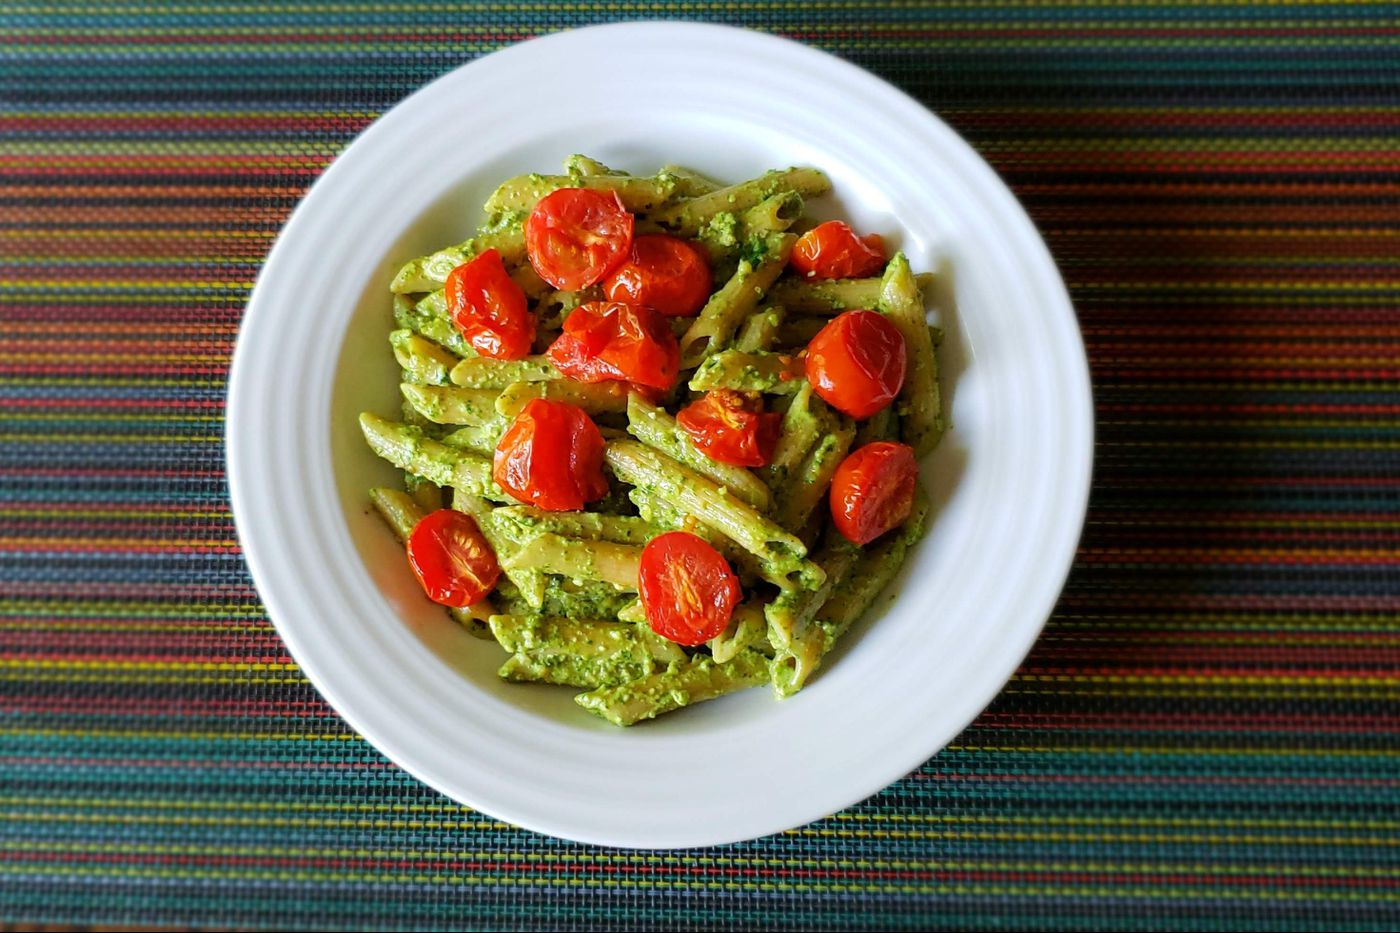 Healthy family recipe: Peruvian pesto with penne and roasted tomatoes